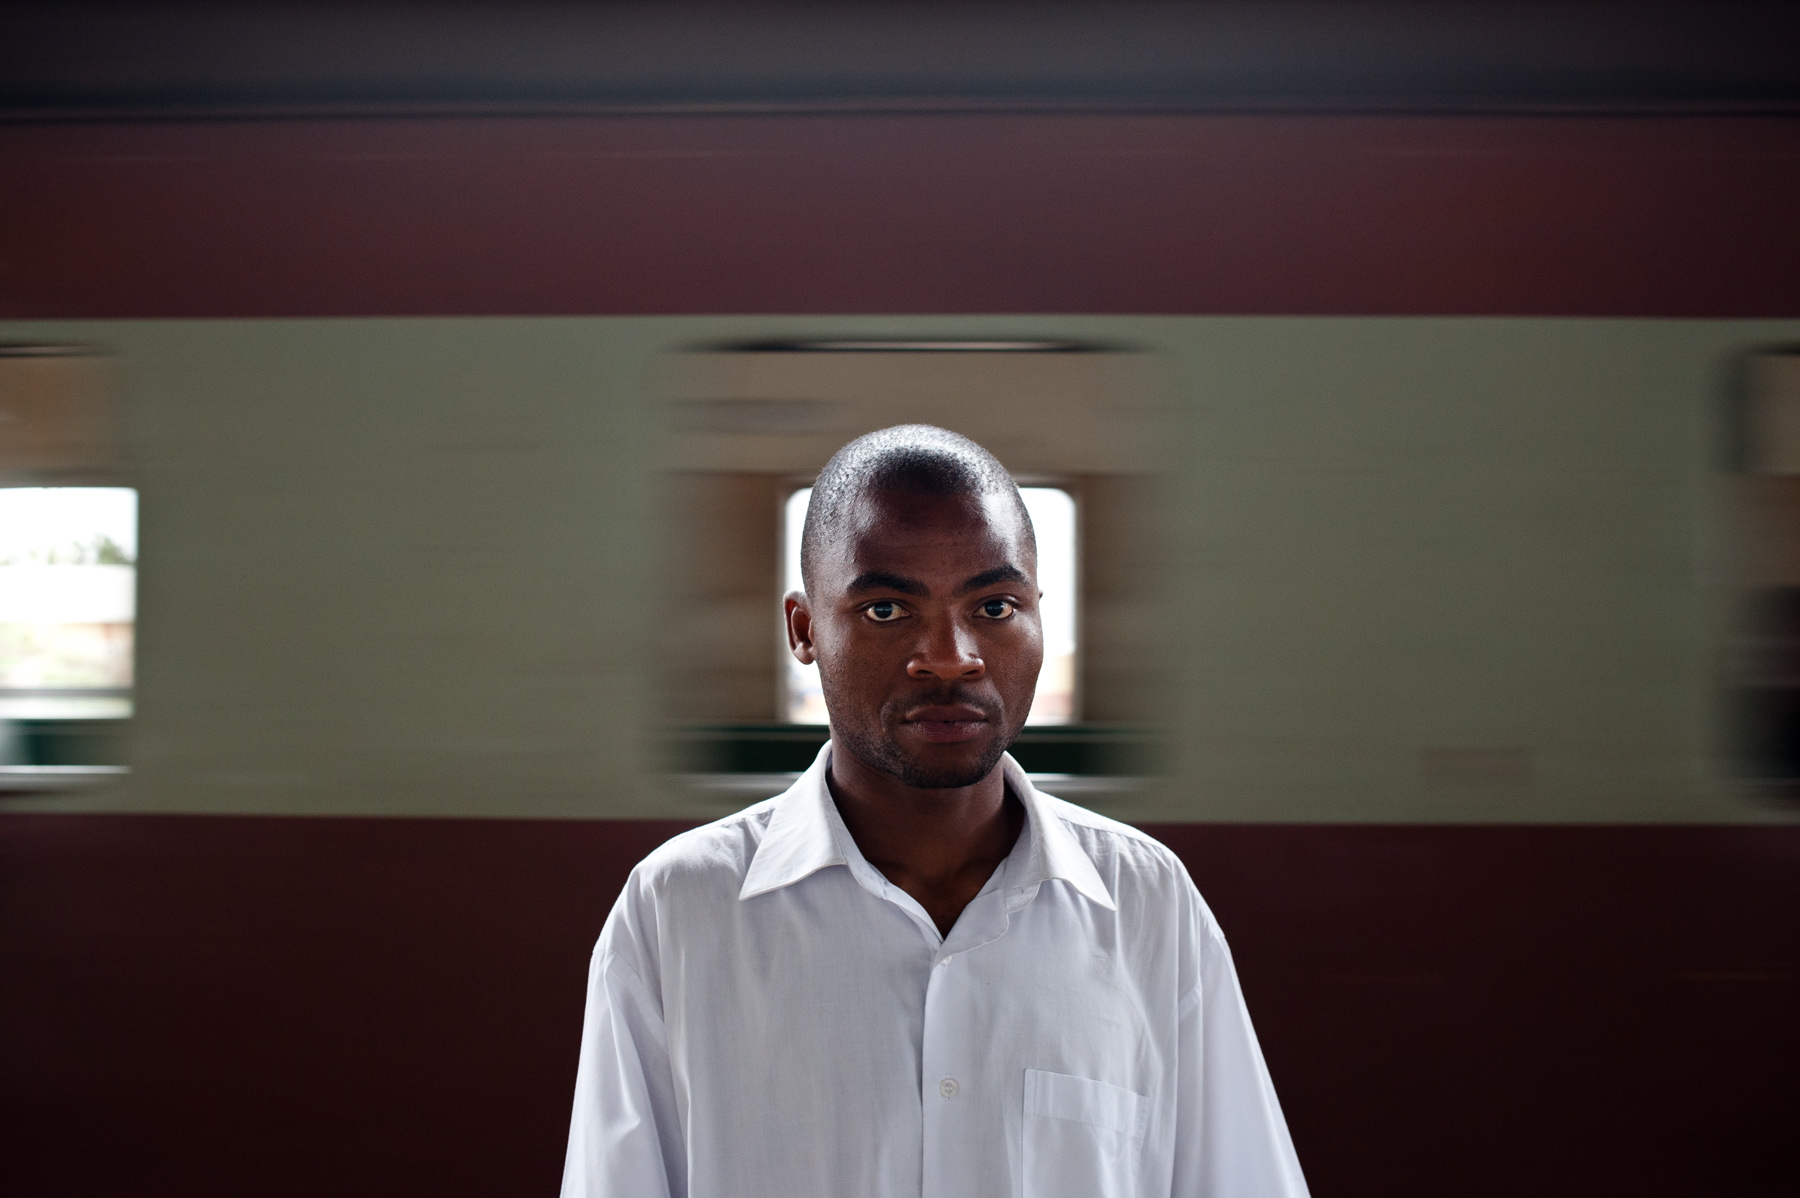 Train - Mozambique - robstarkphotography.com